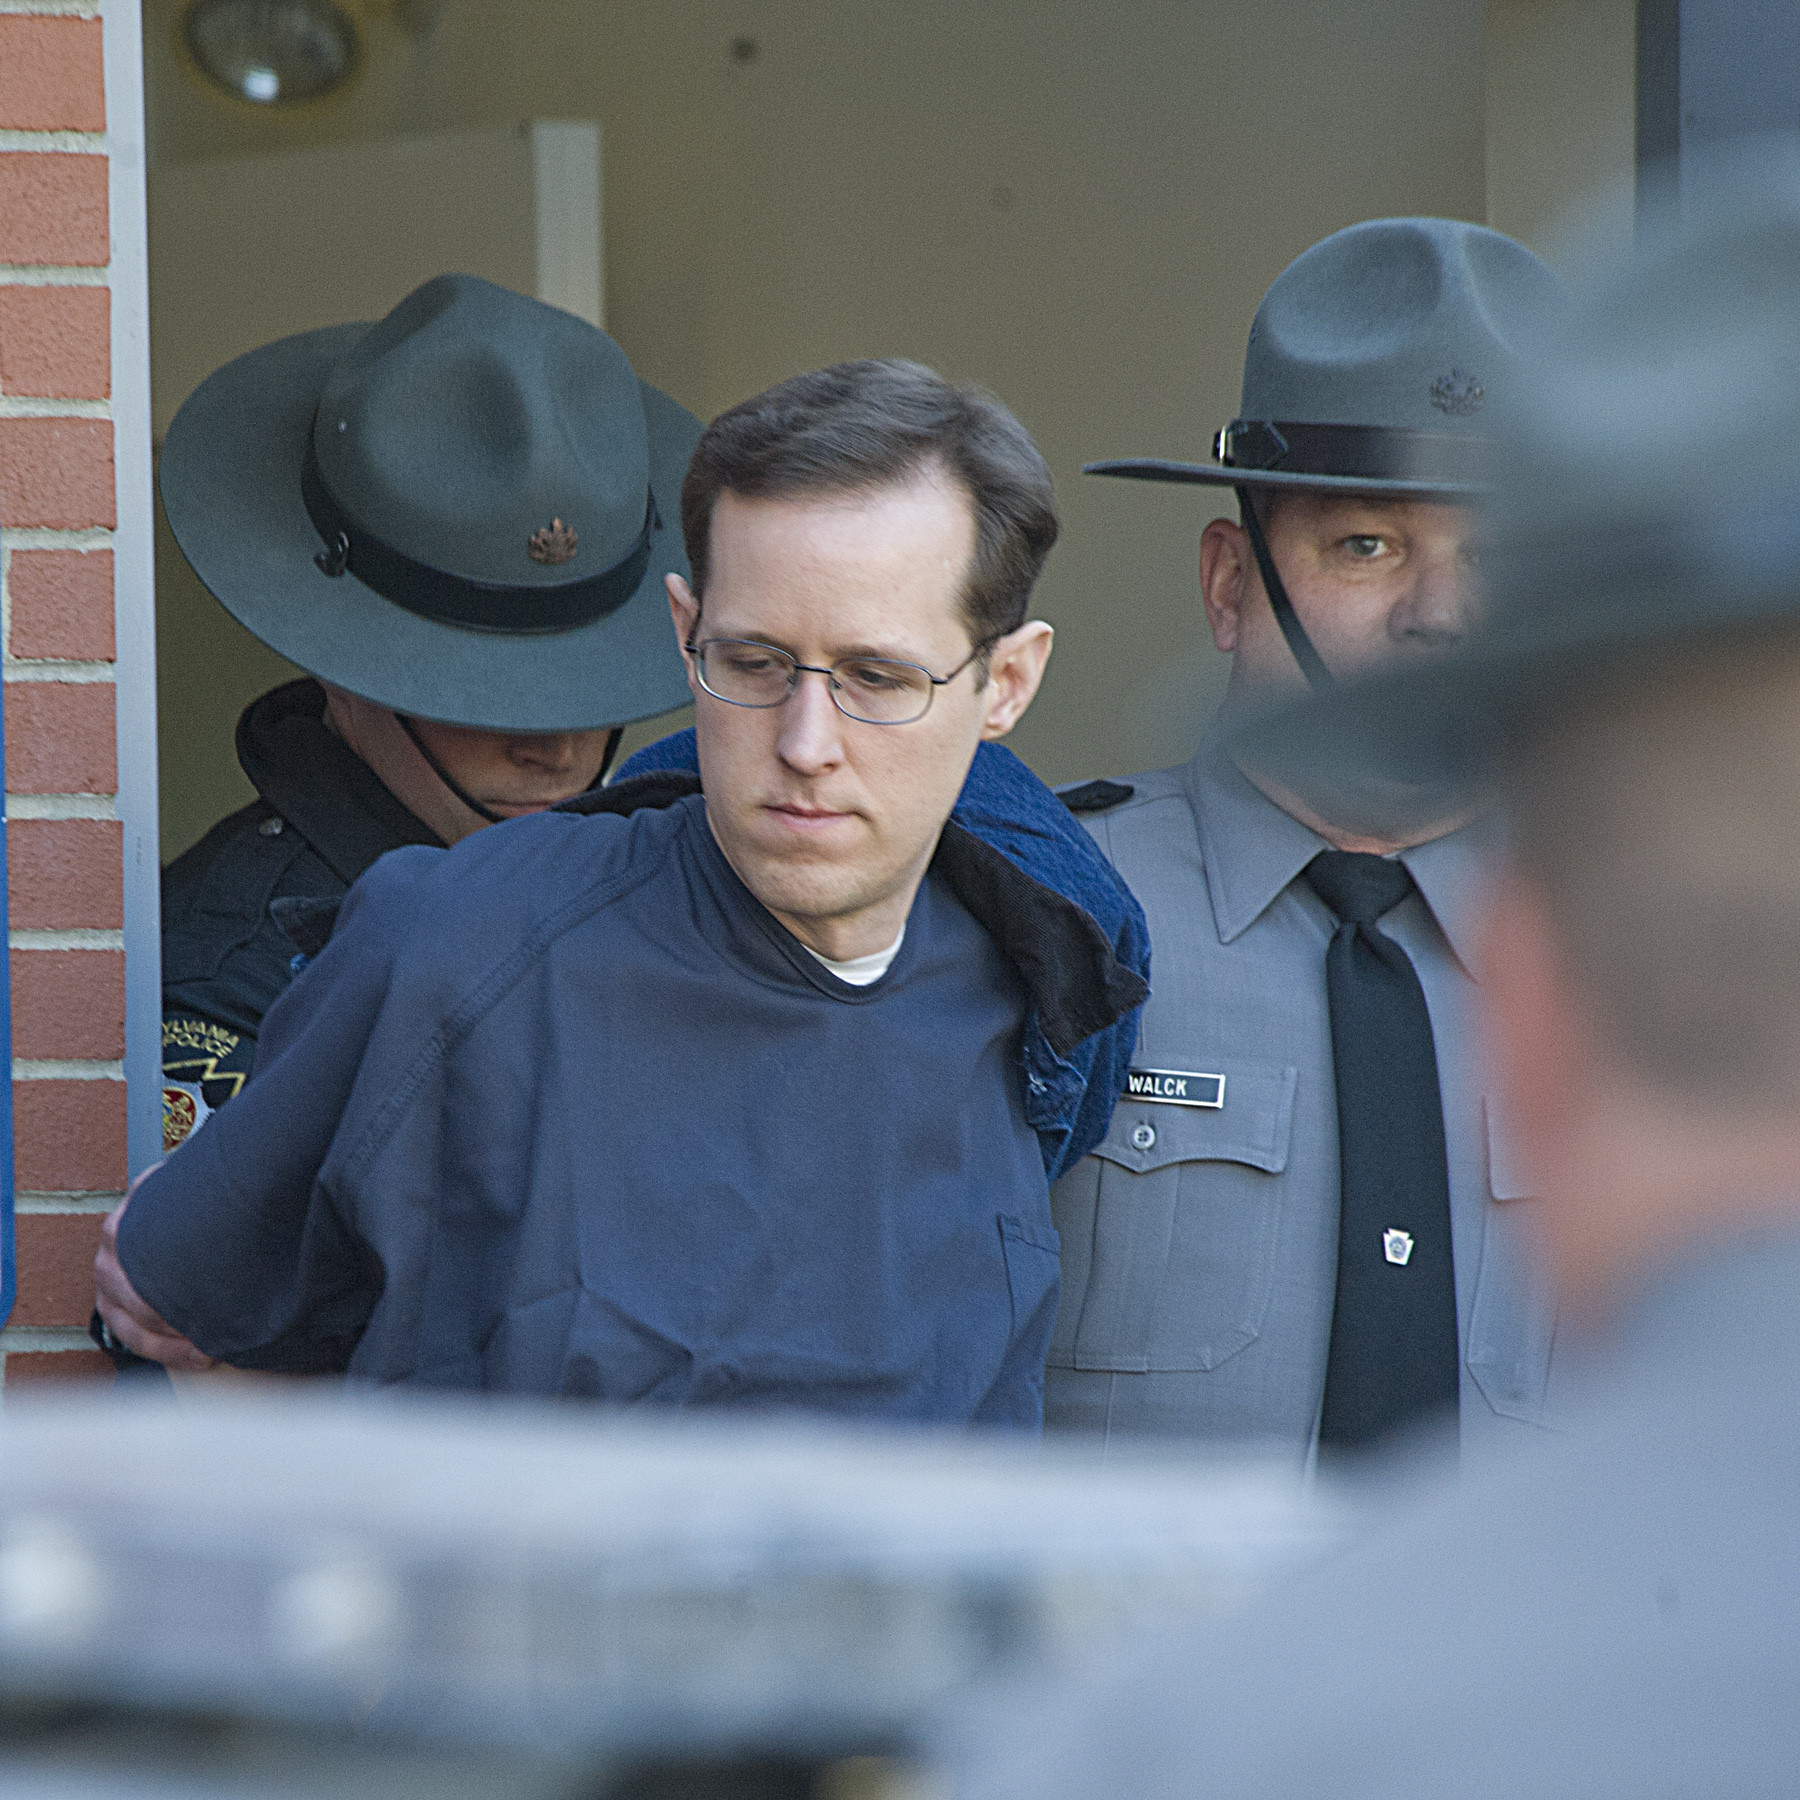 Pennsylvania manhunt ends as Eric Frein 'had no choice but to give up'